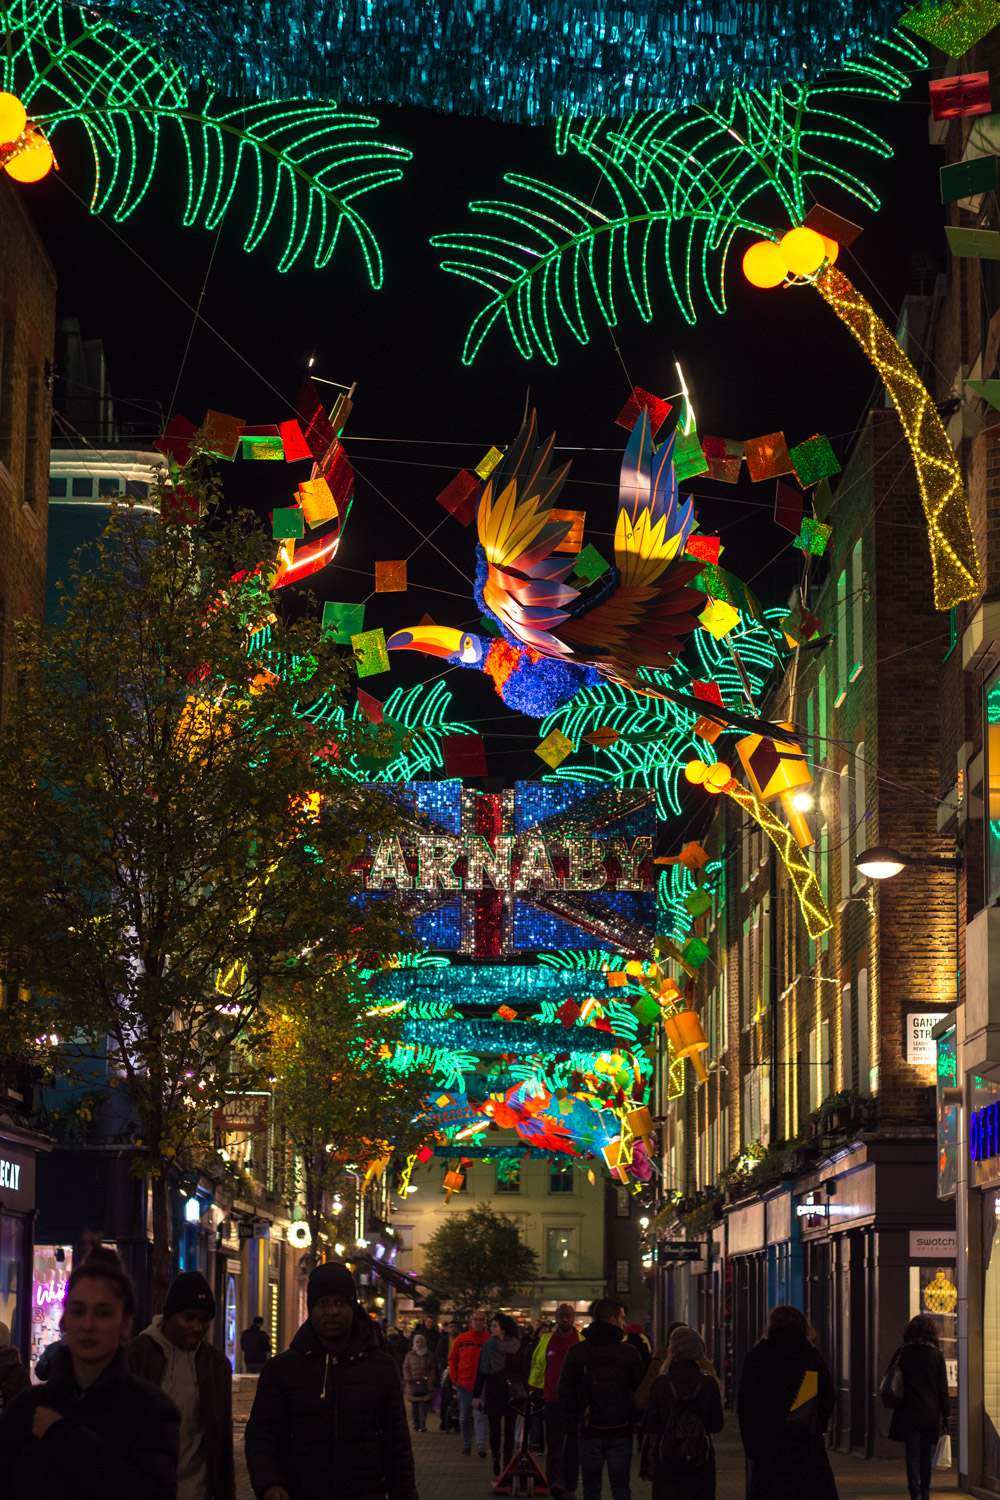 Carnaby Street lit up at night in London